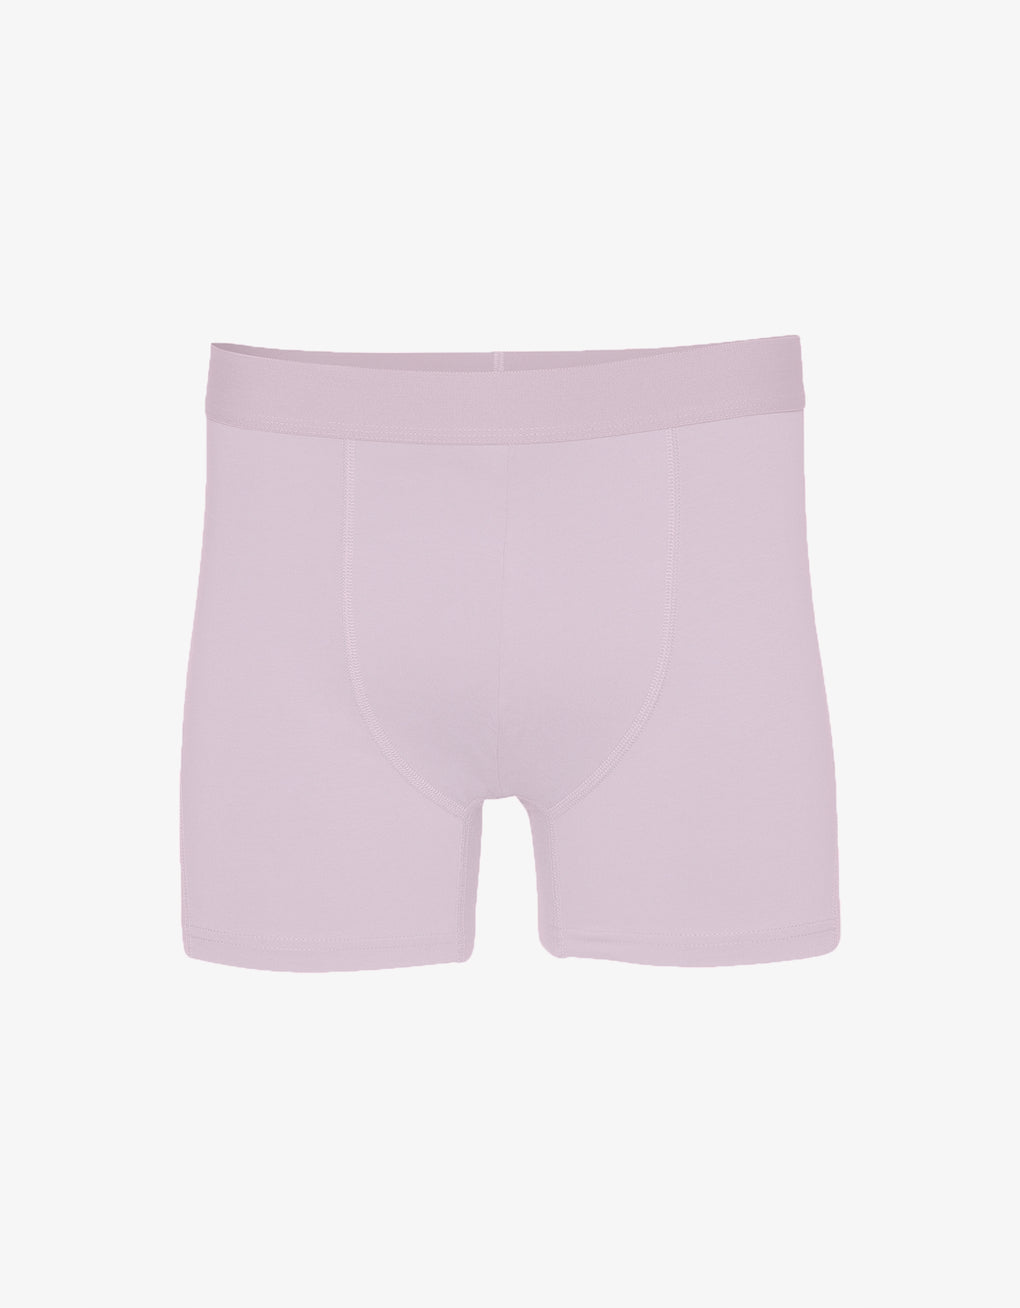 Colorful Standard Classic Organic Boxer Briefs Underwear Faded Pink